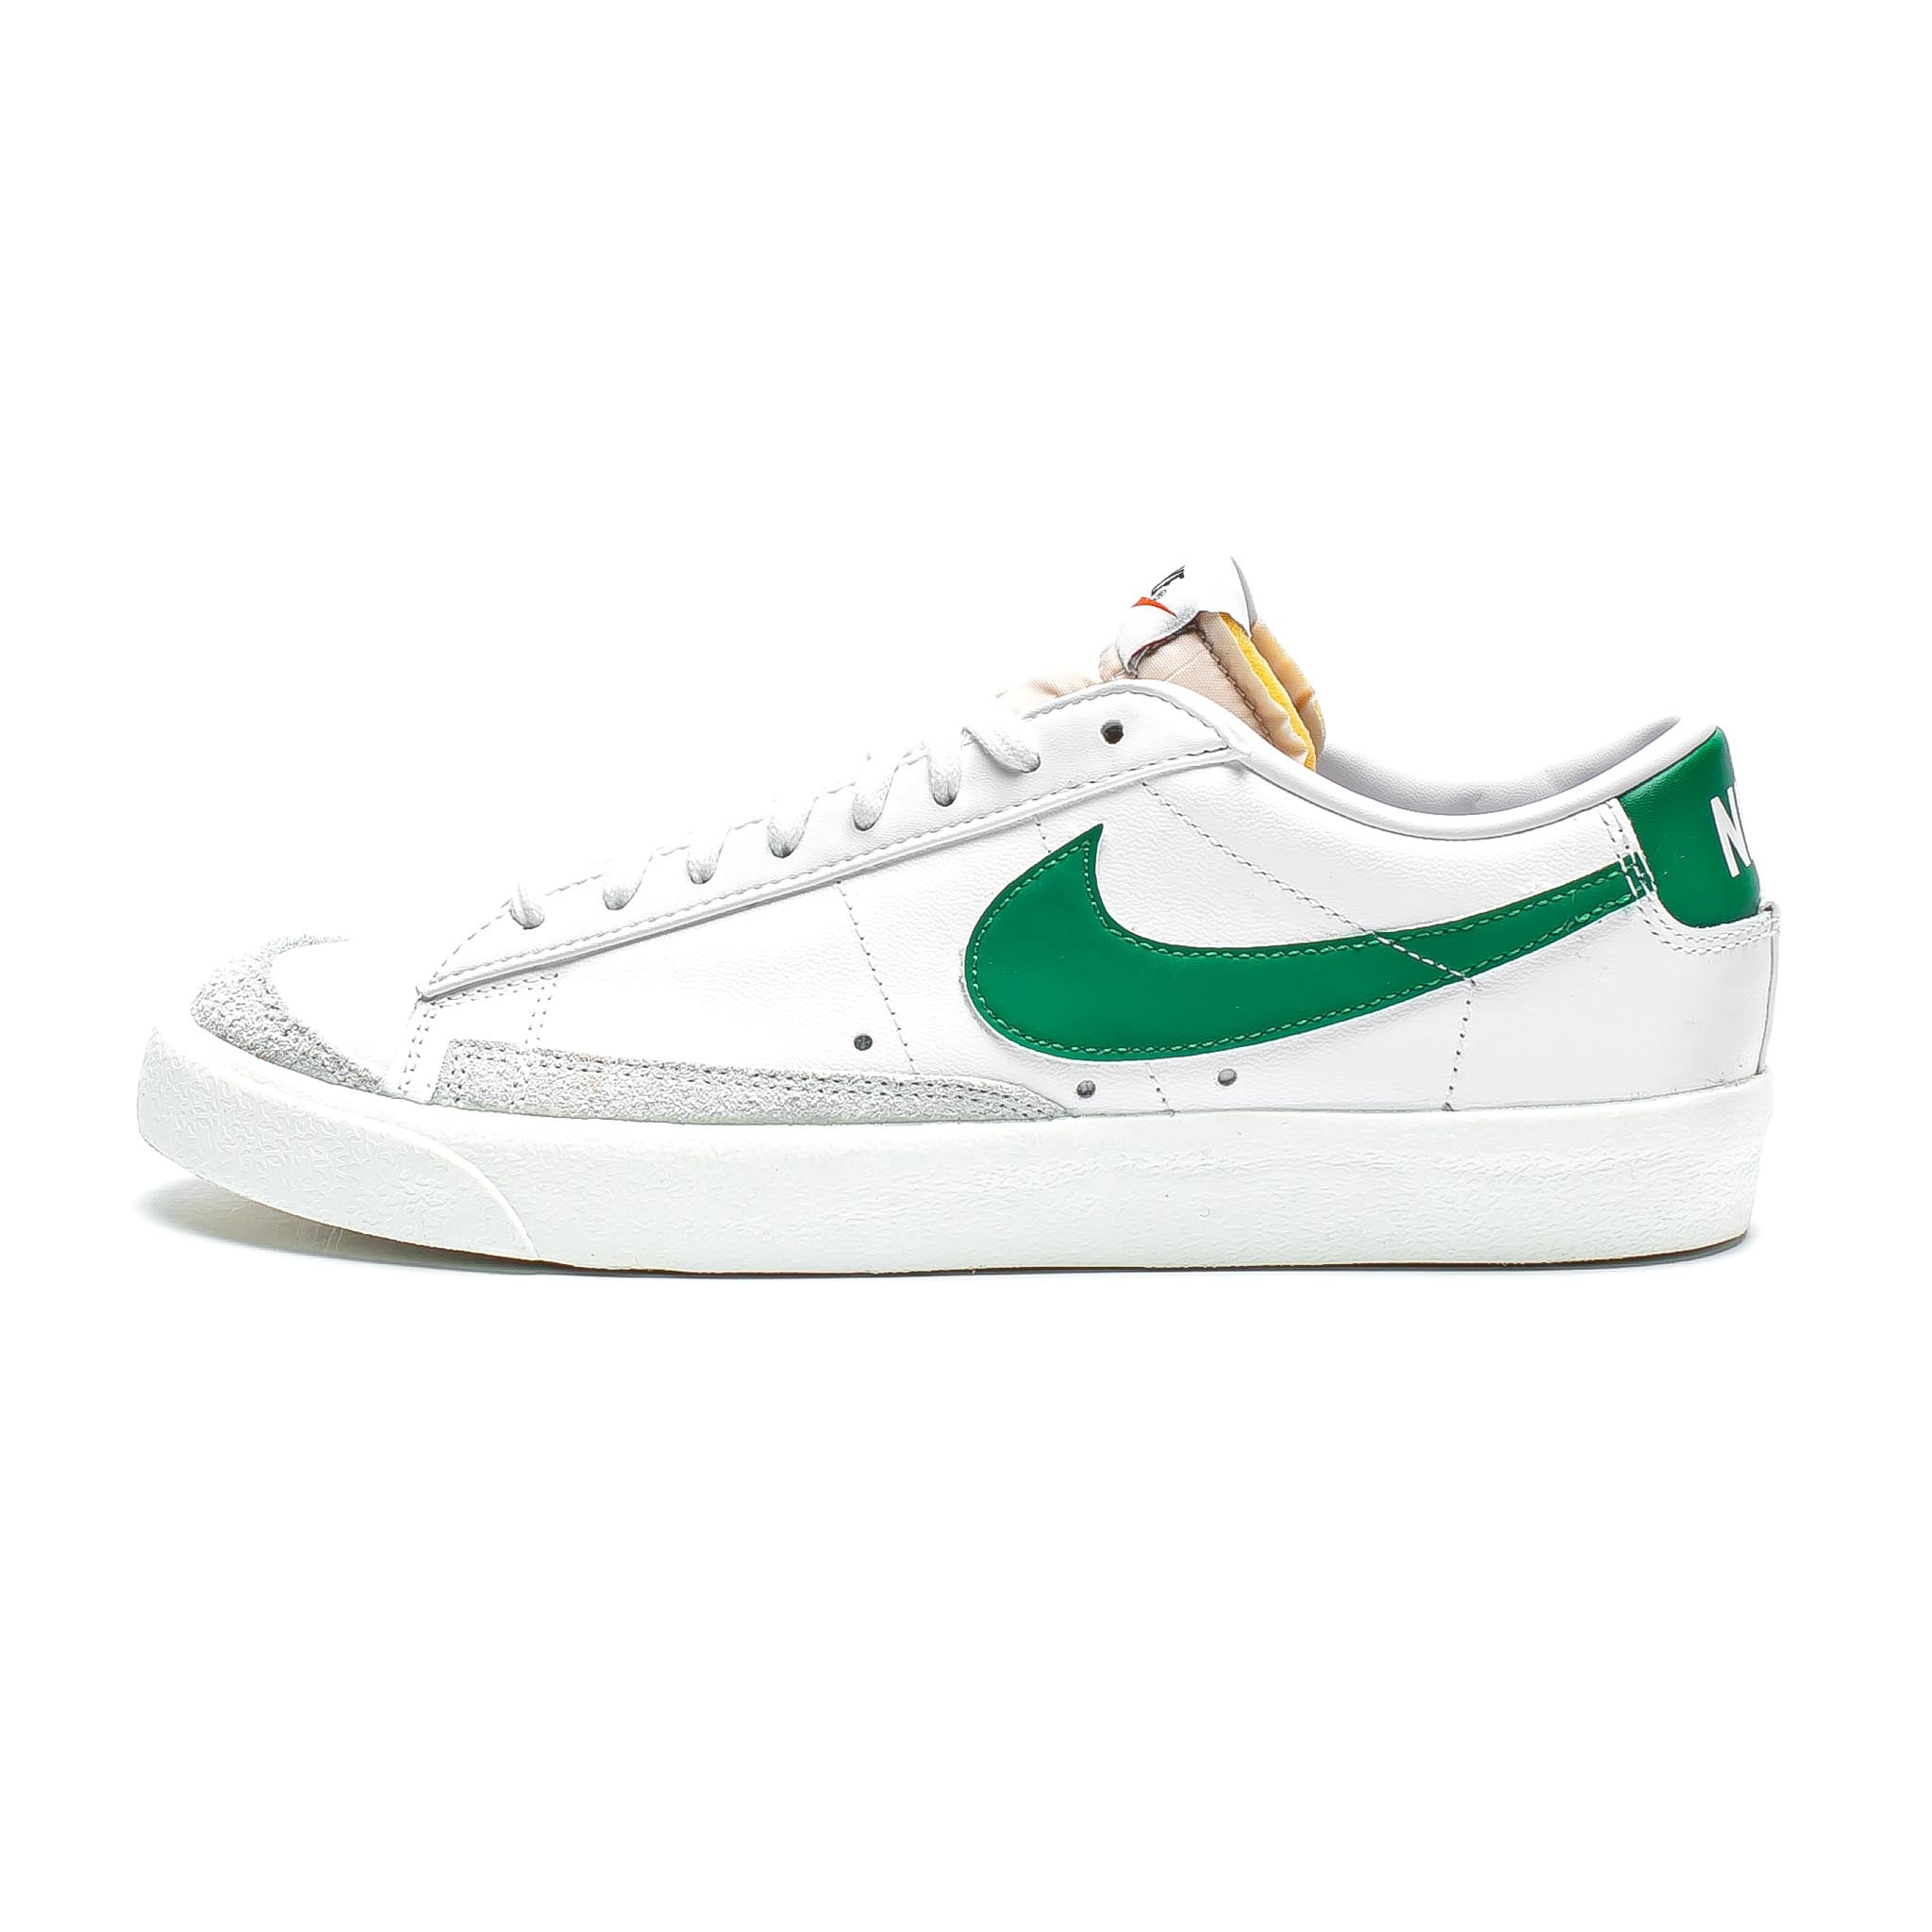 Nike Blazer Low '77 VNTG 'Pine Green'